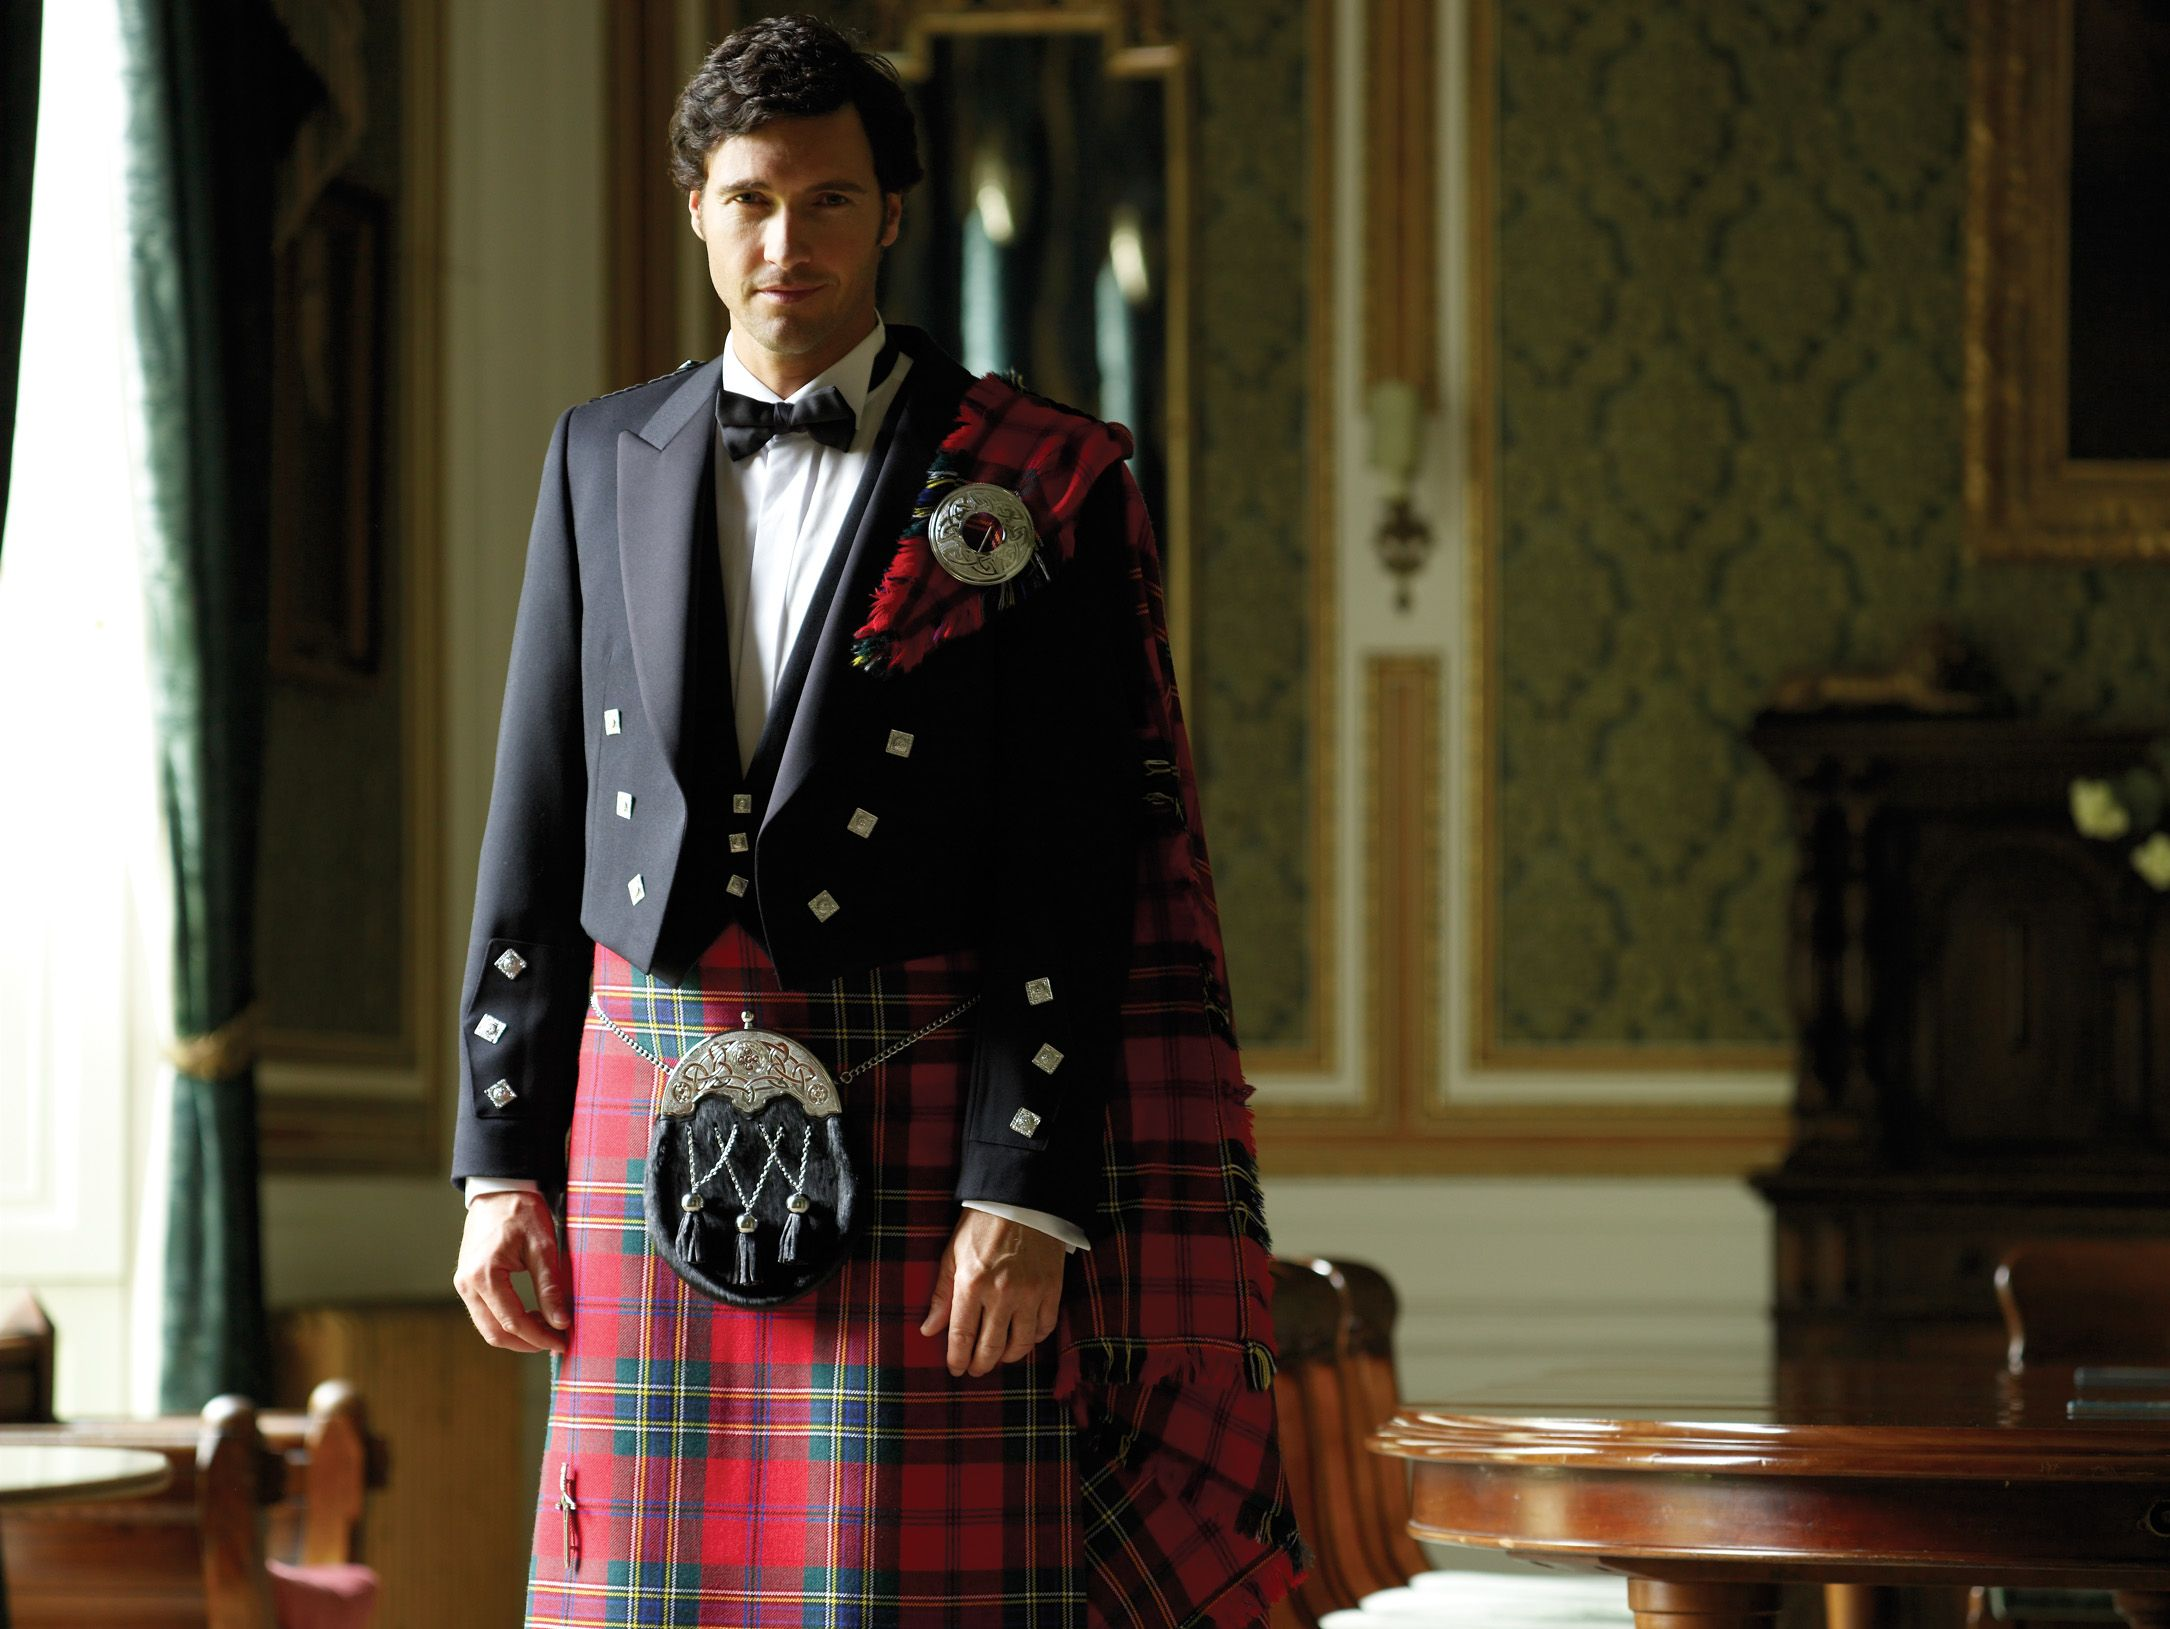 Modern Maclean Of Duart Tartan Bond Brothers Formalwear For Men Kilt Dress Hire Men In Kilts